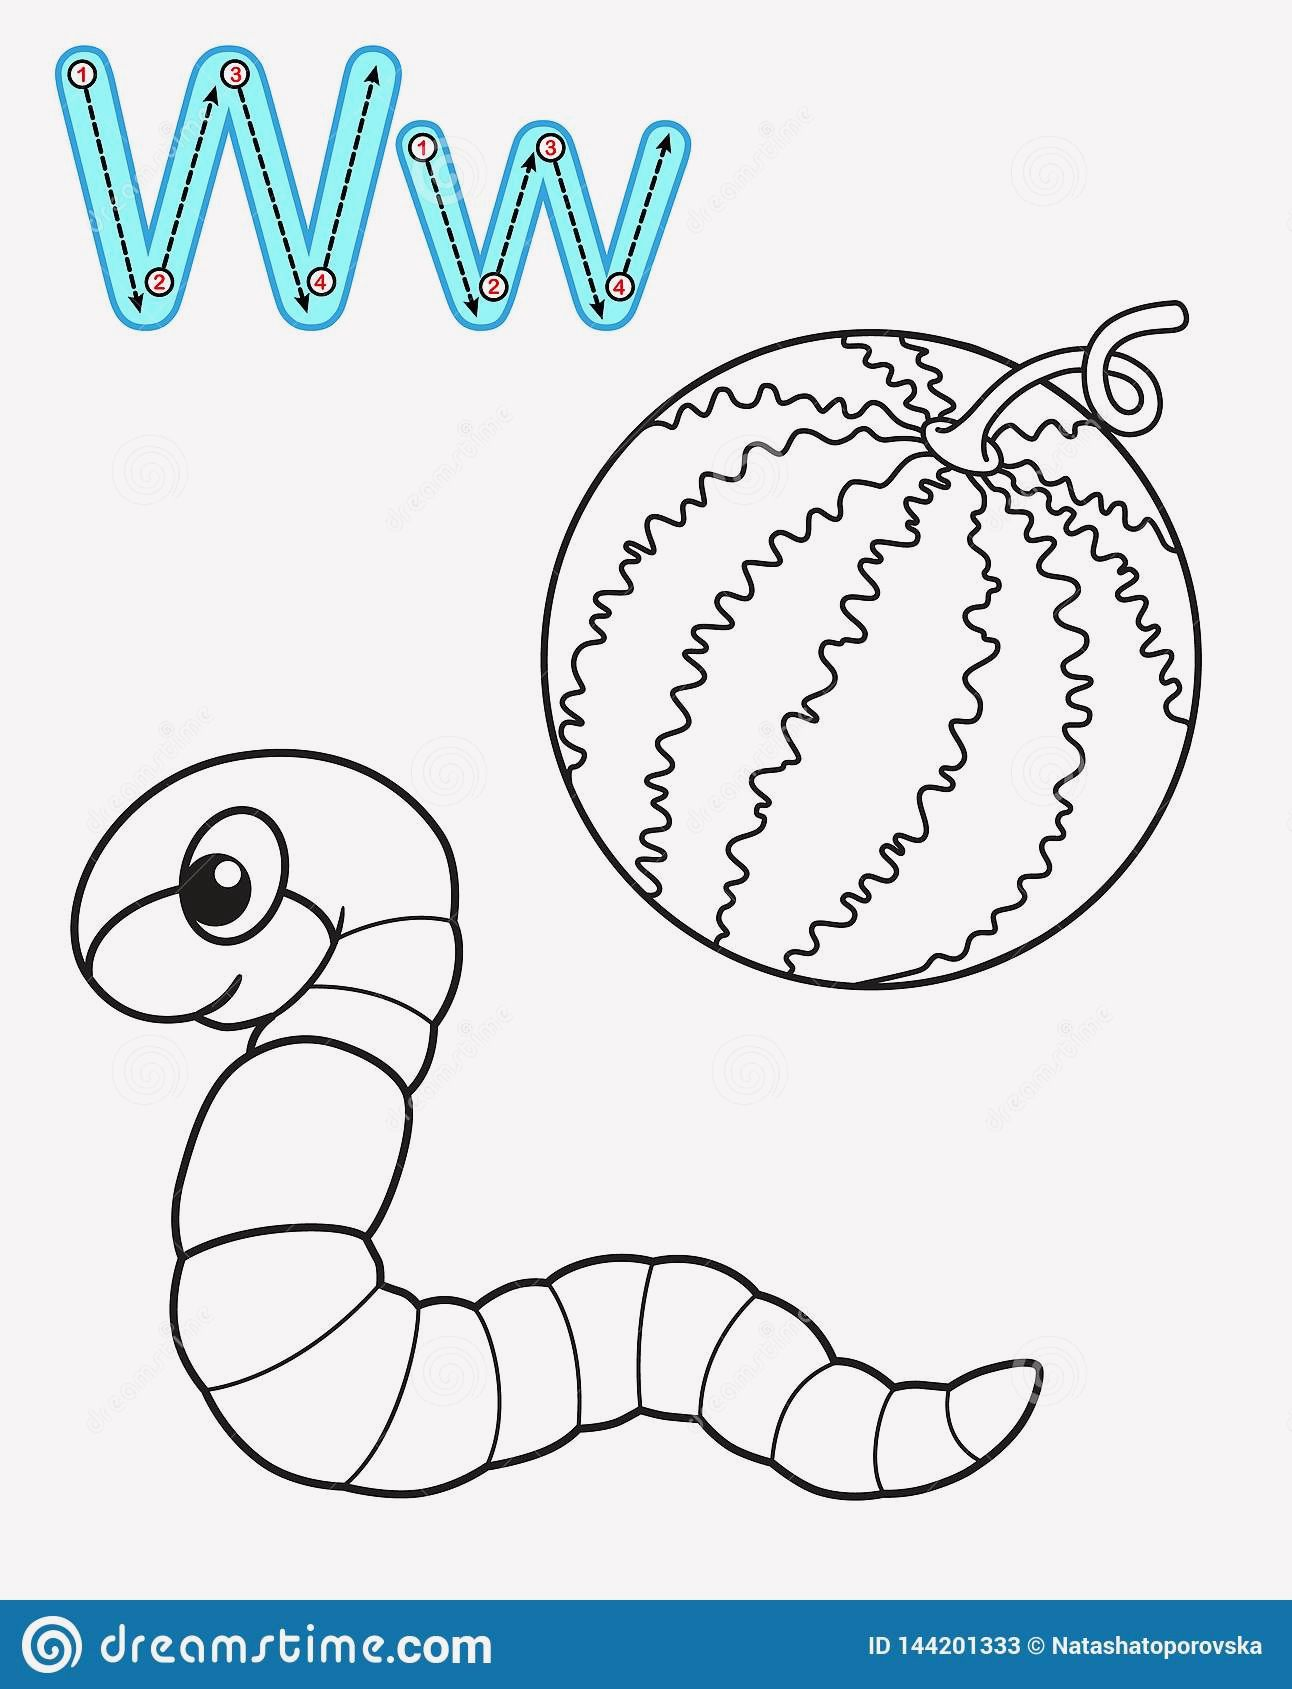 12 Coloring Pages Of Alphabet Letters Letter A Coloring Pages Coloring Pages Alphabet Coloring Pages